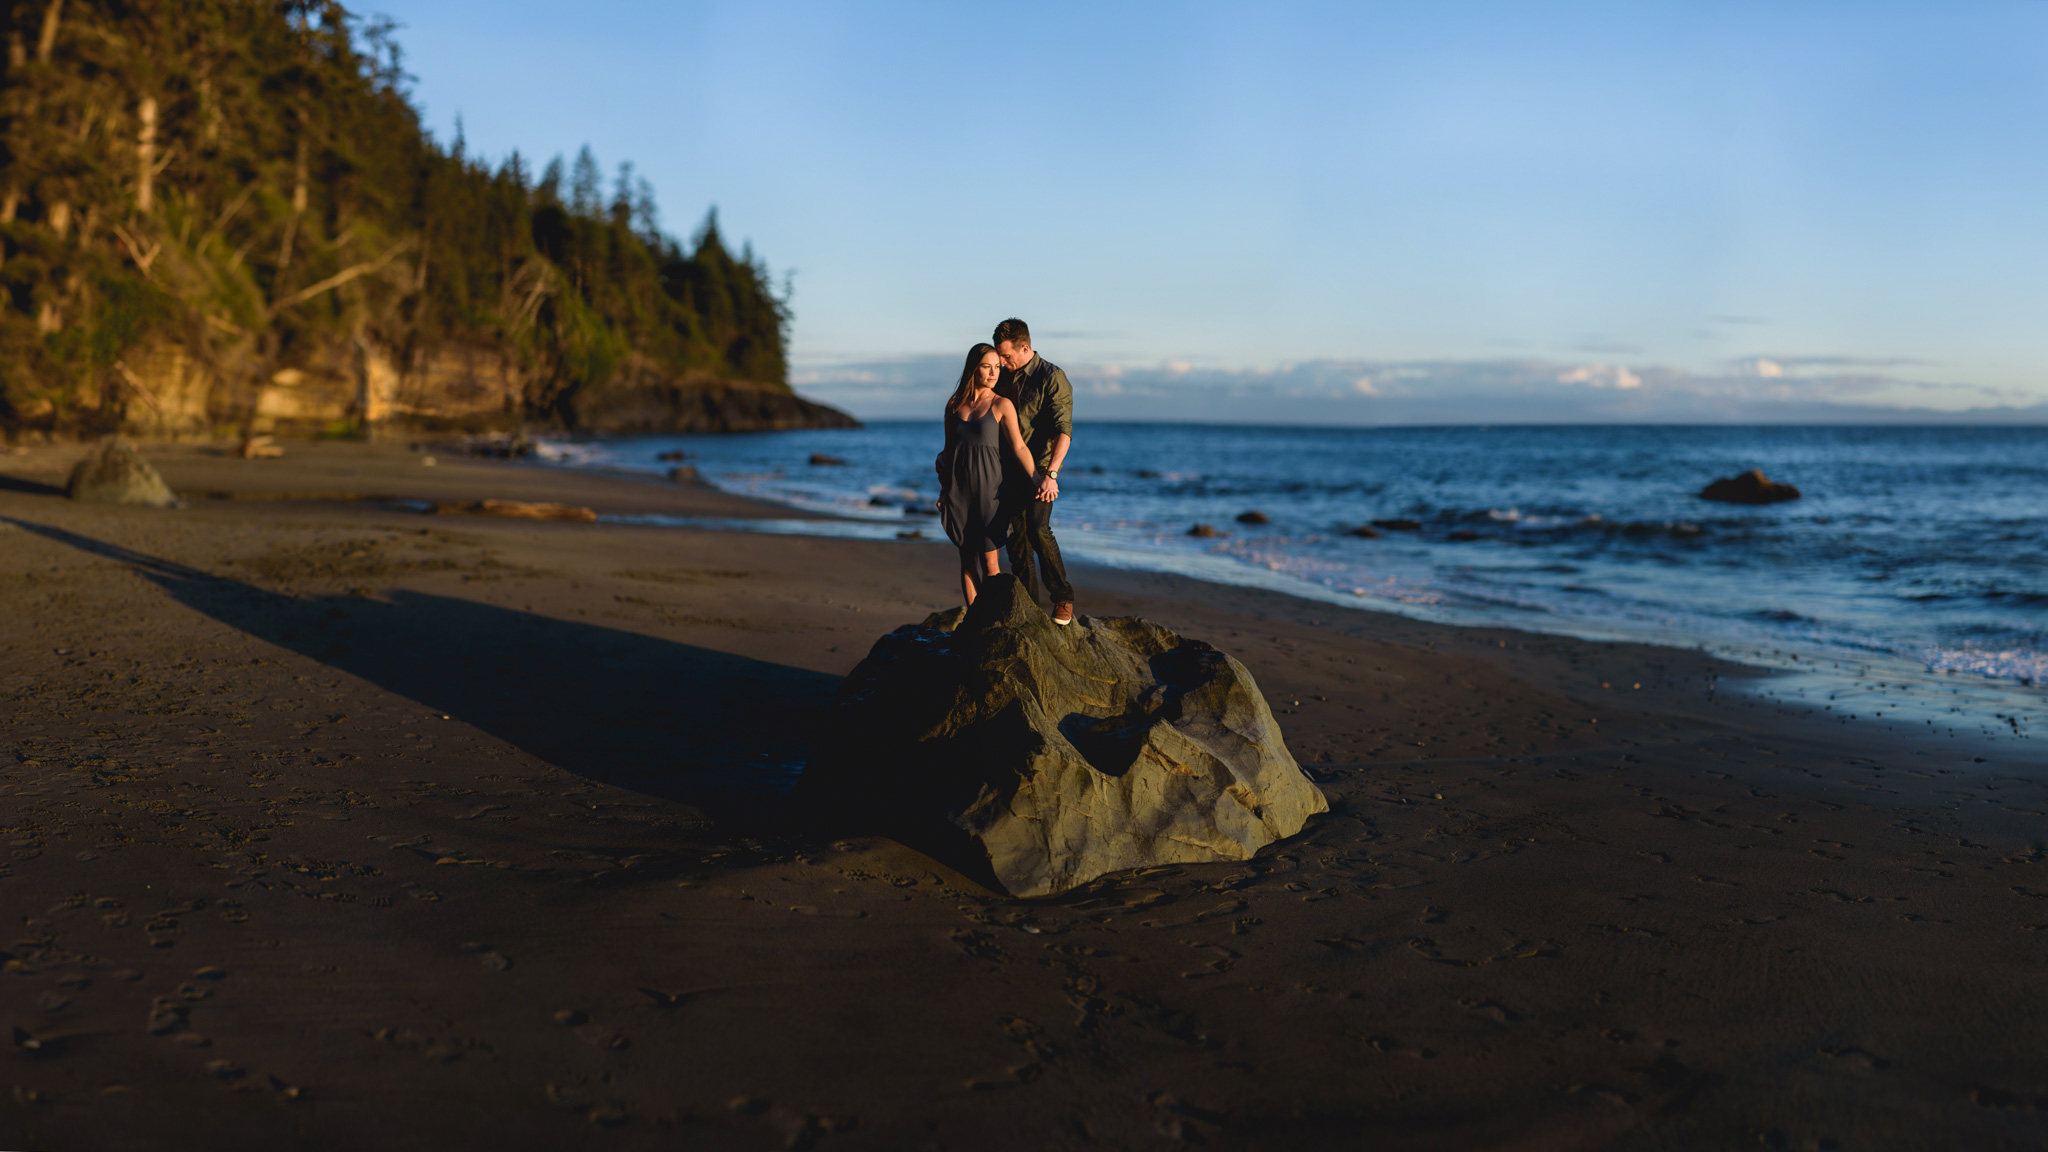 mystic-beach-engagement-victoria-wedding-photographer-26.jpg